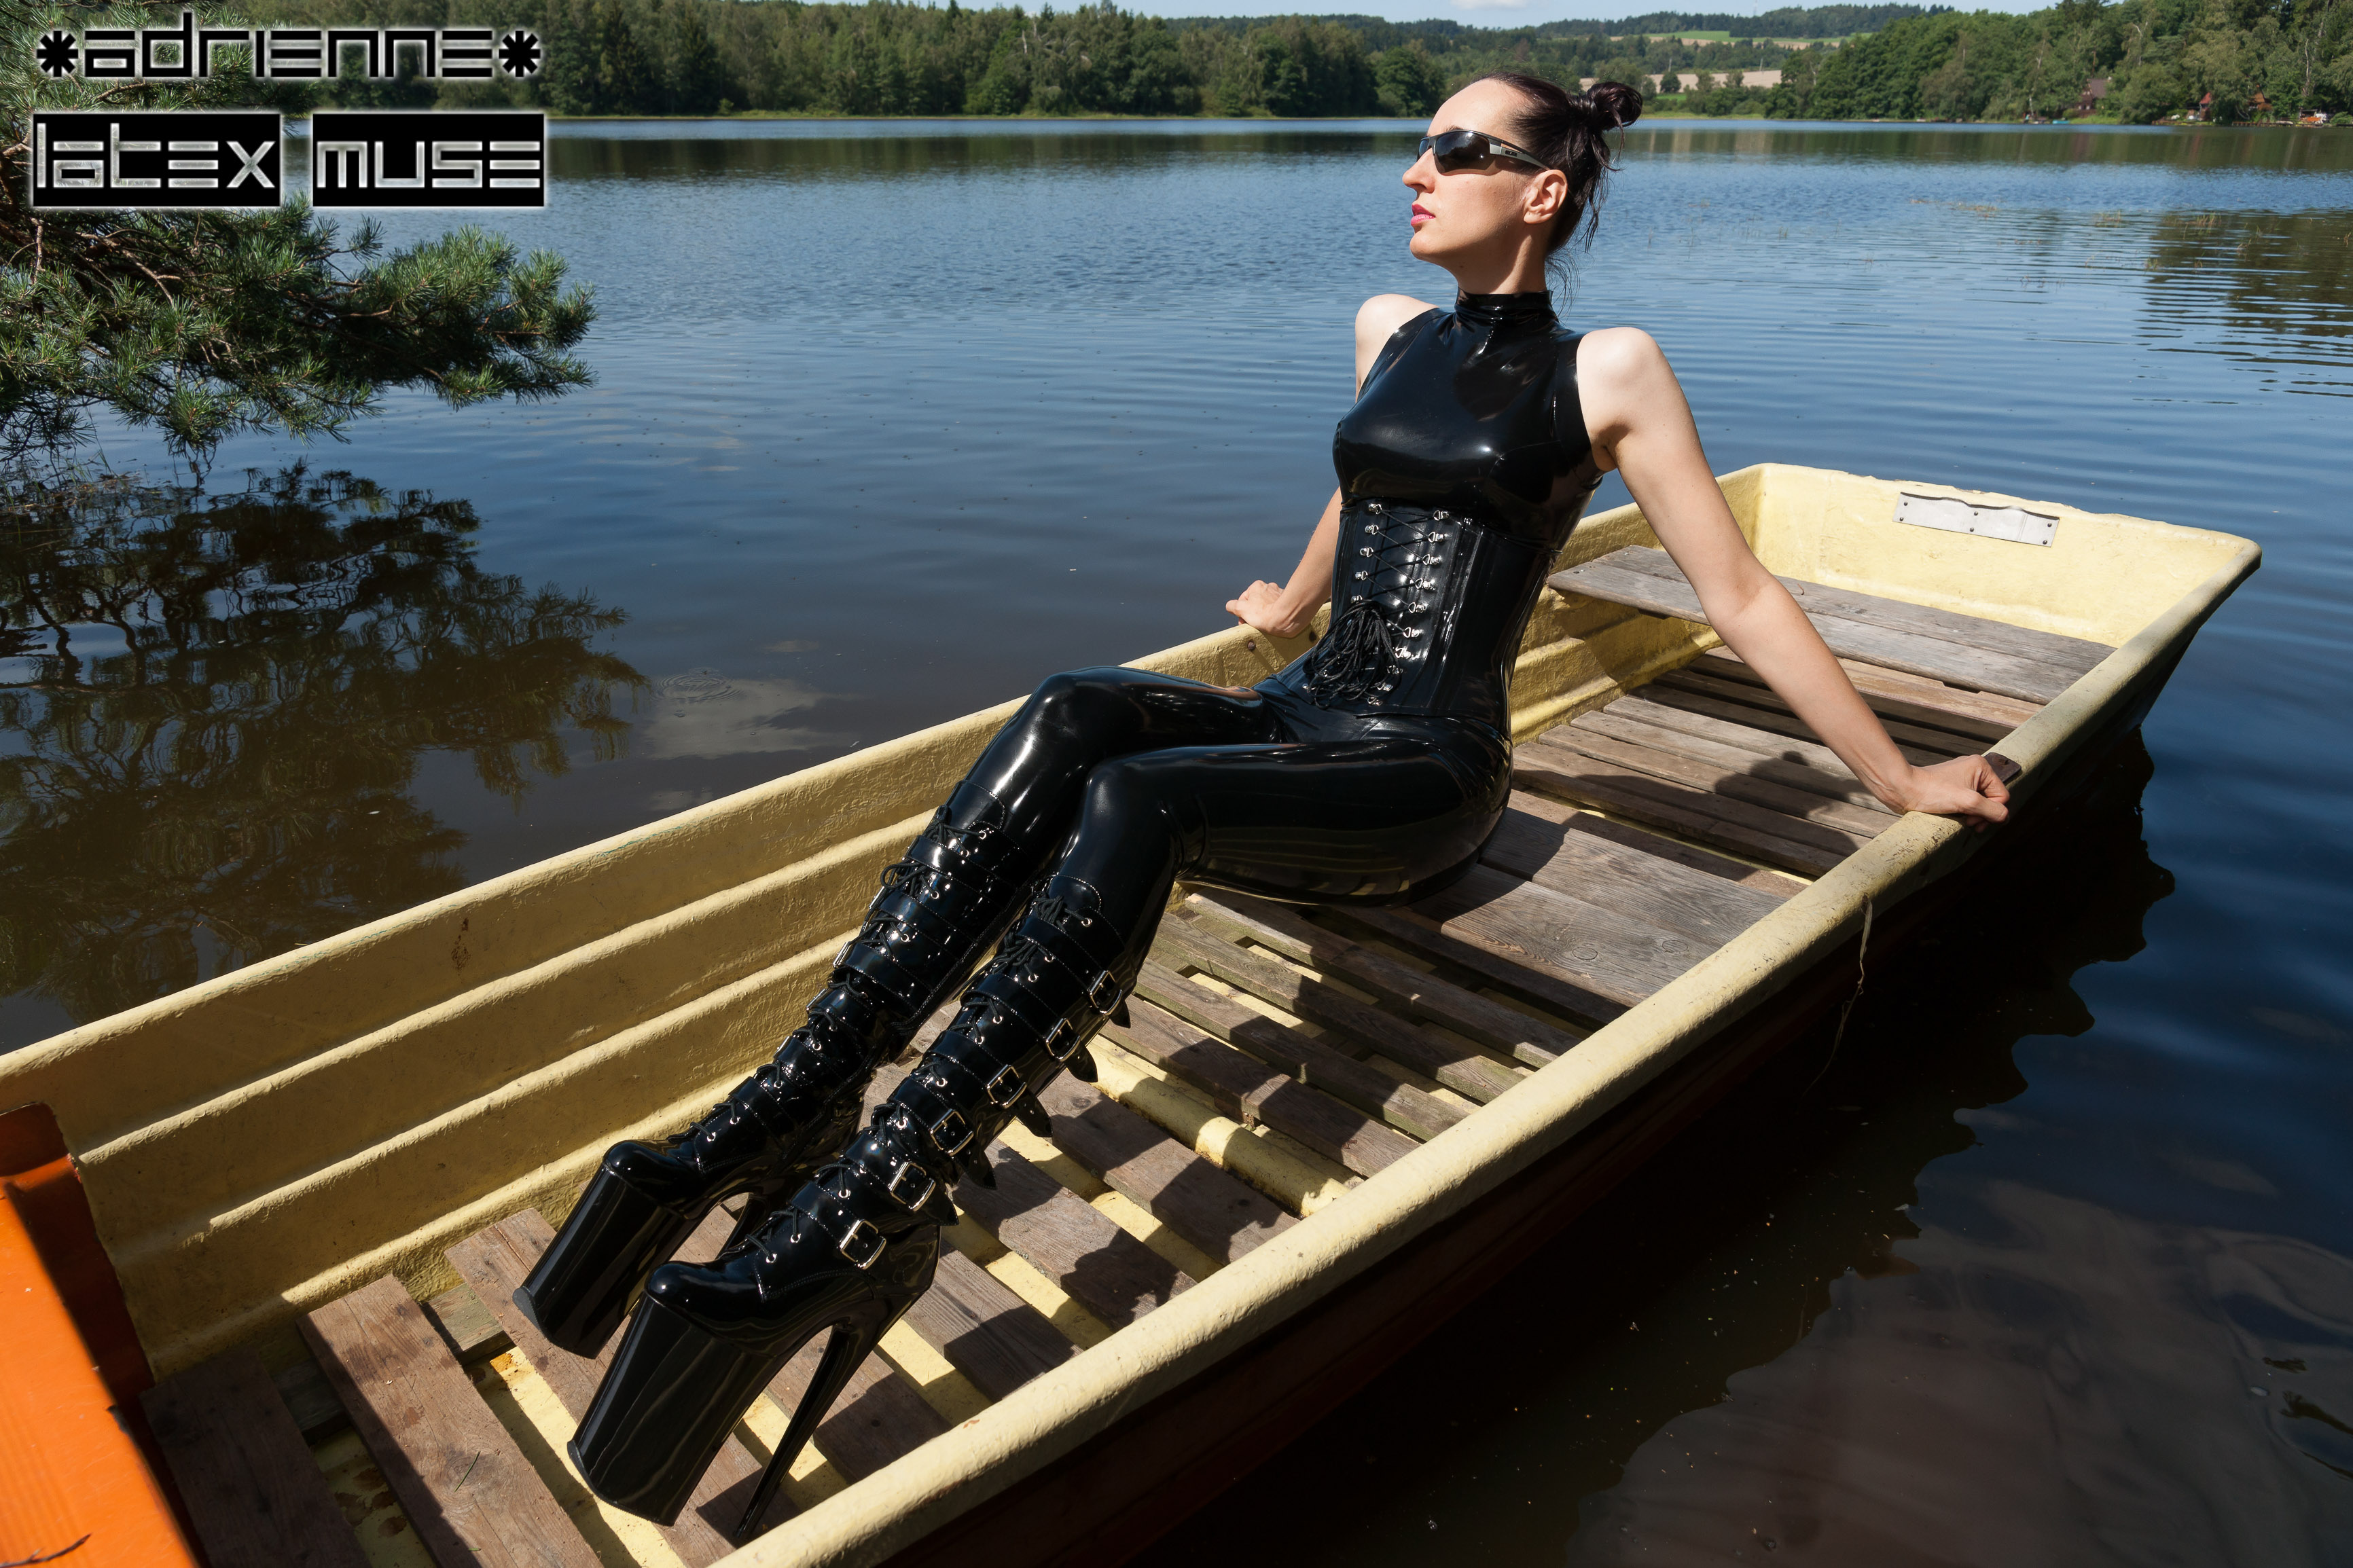 2016 - Latex in countryside